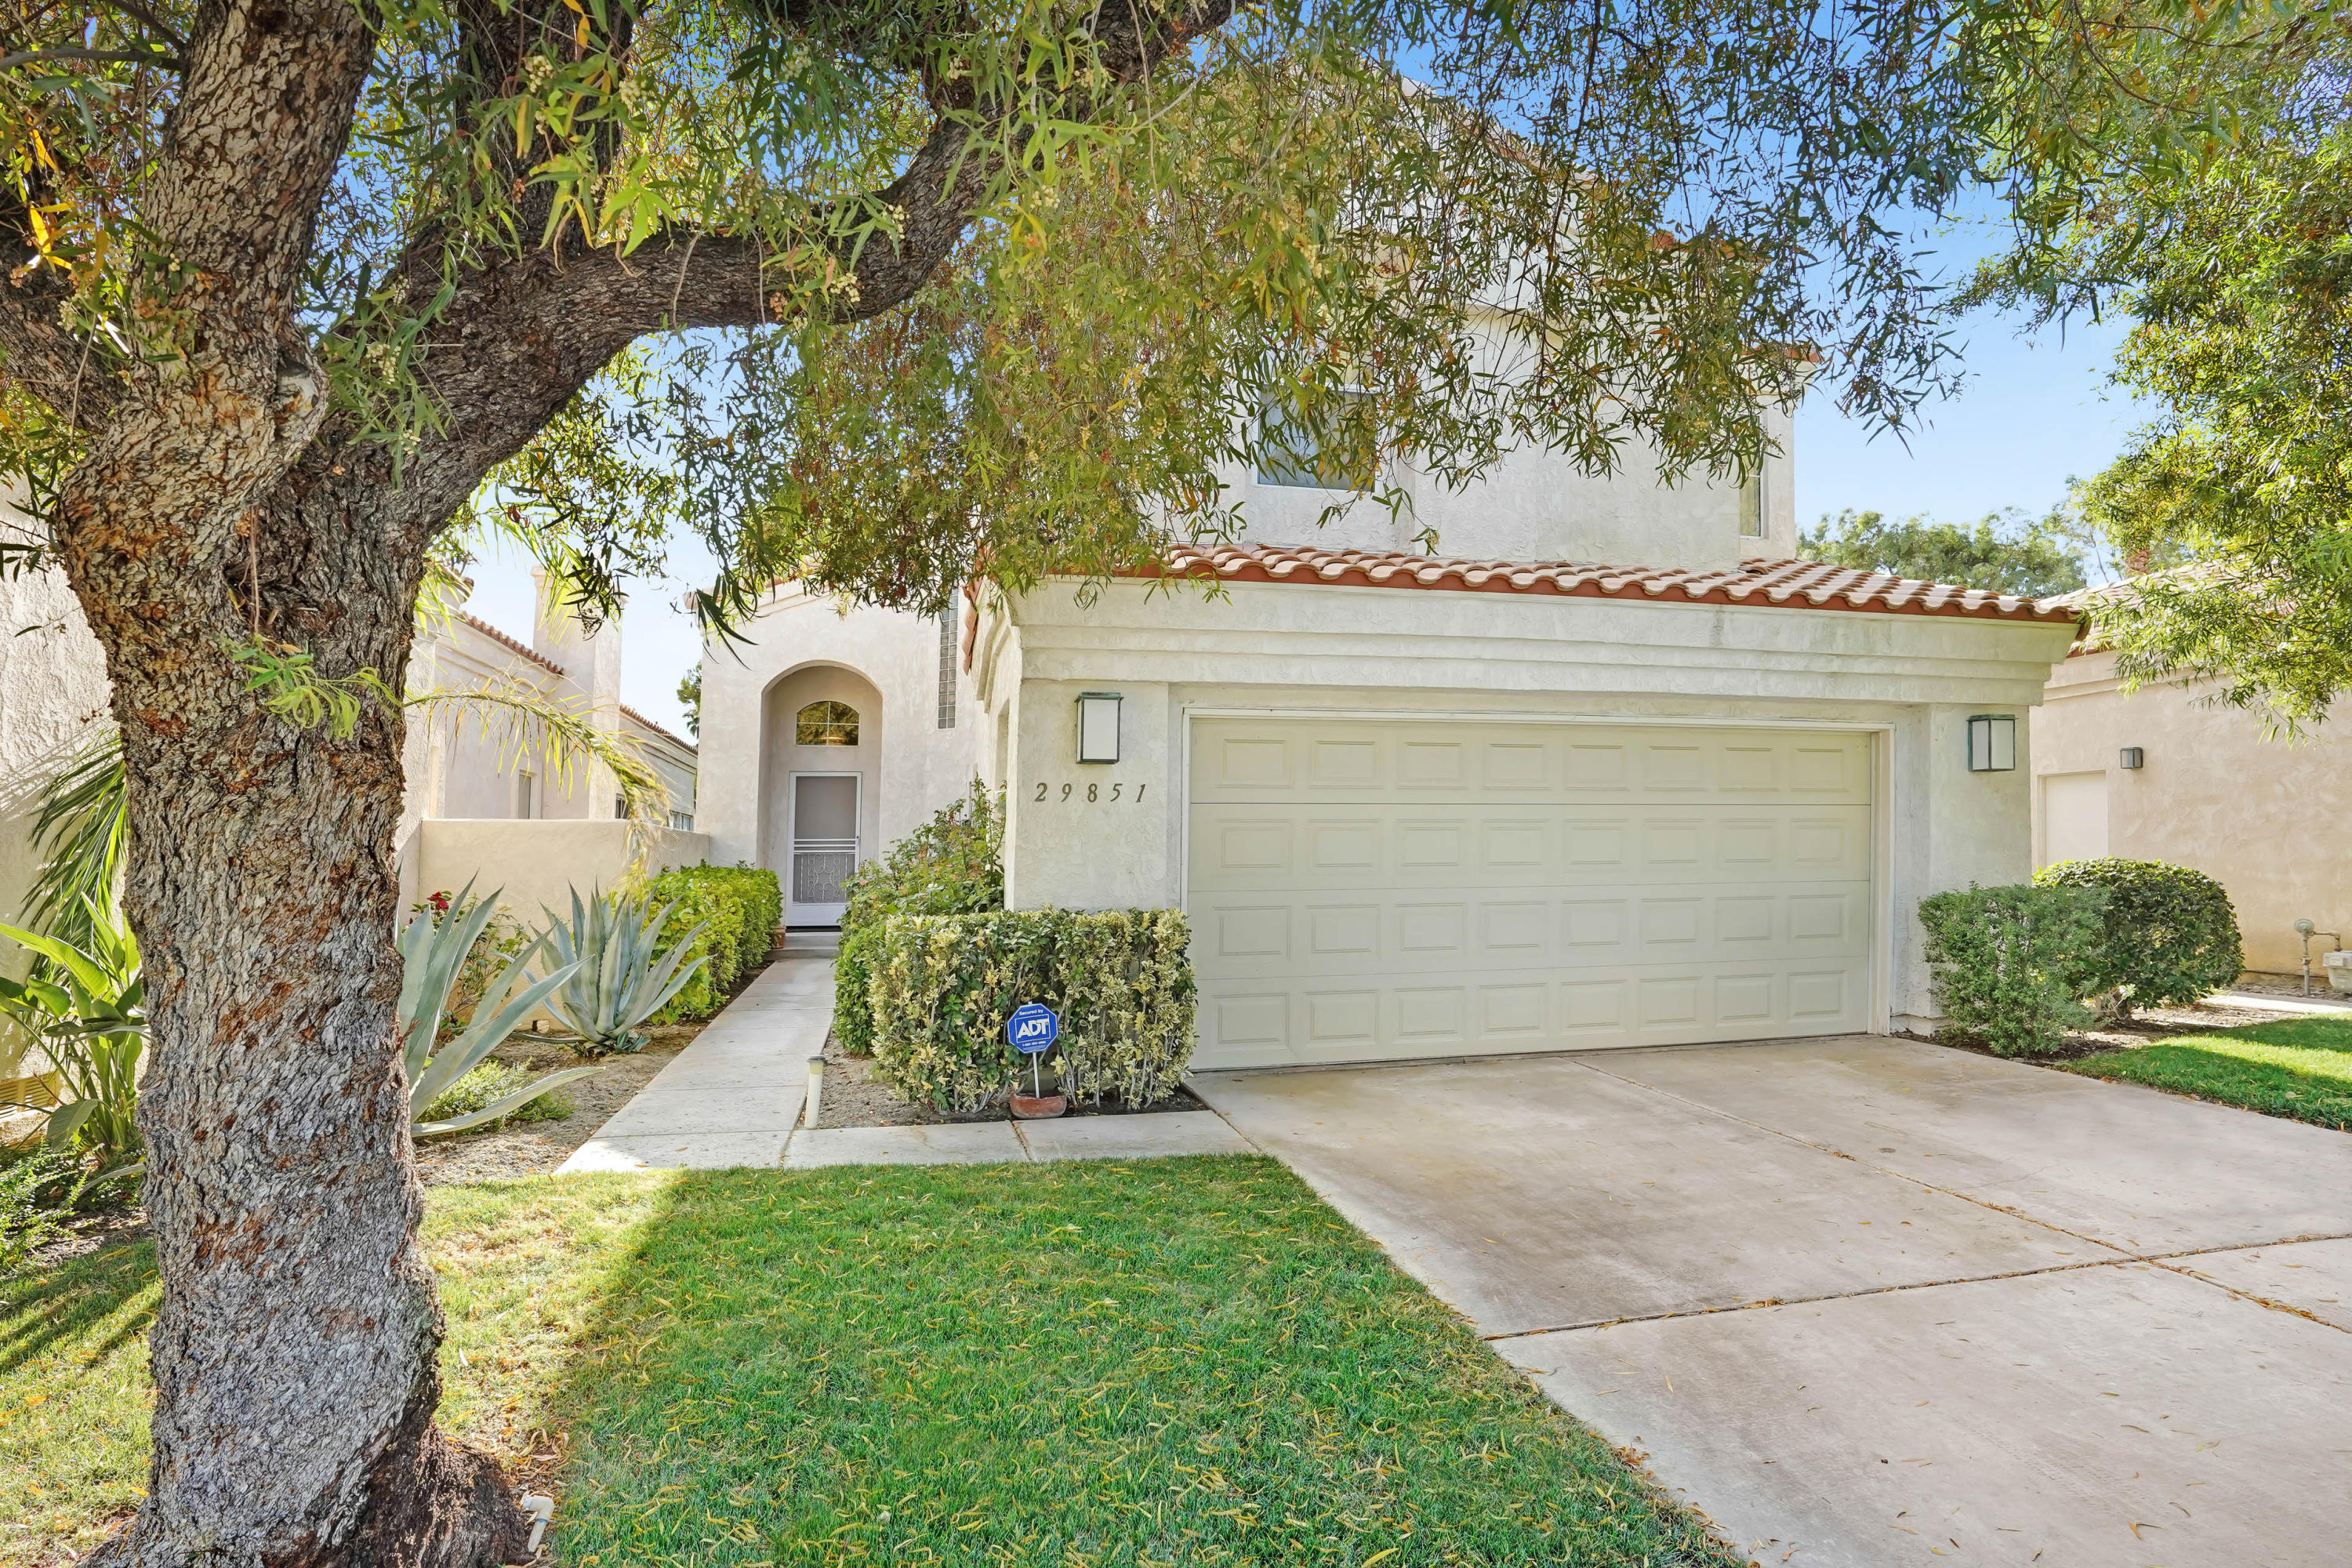 Largest Desert Princess two-story villa! This La Paz floor plan has it all. It's spacious, turnkey furnished, and with majestic views of the surrounding mountain ranges and golf course ! You can enjoy these views from the in-ground private spa, patio, or on the balcony that's located outside the master bedroom which is vast in space. The exterior also has custom lighting that includes tree illumination . Desert Princess has a 27-hole championship golf course and has maintained an inimitable sense of country club privacy. Some amenities include a recreation and fitness, seven plexi paved US open tennis courts, basketball, racquetball, ten championship pickleball courts, bocce ball, horseshoes, and a full-service Spa with sauna, hot tub and lap pool. There are 33 additional swimming pools throughout the common areas, all maintained by our community and It's only 10 minutes from downtown Palm Springs .